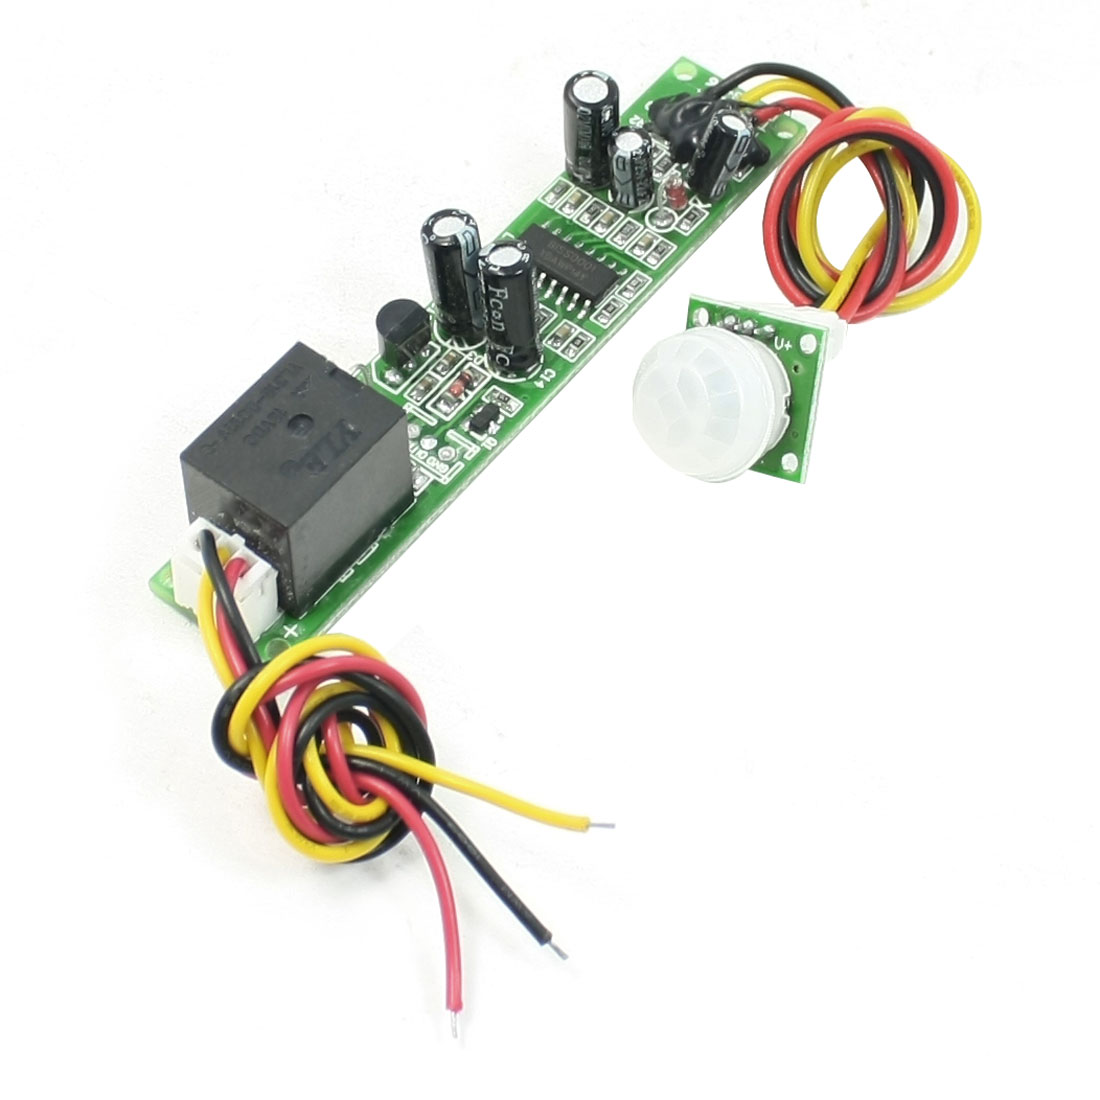 12VDC TDL-728 Model Temperature Sensor Module for Automatic Light